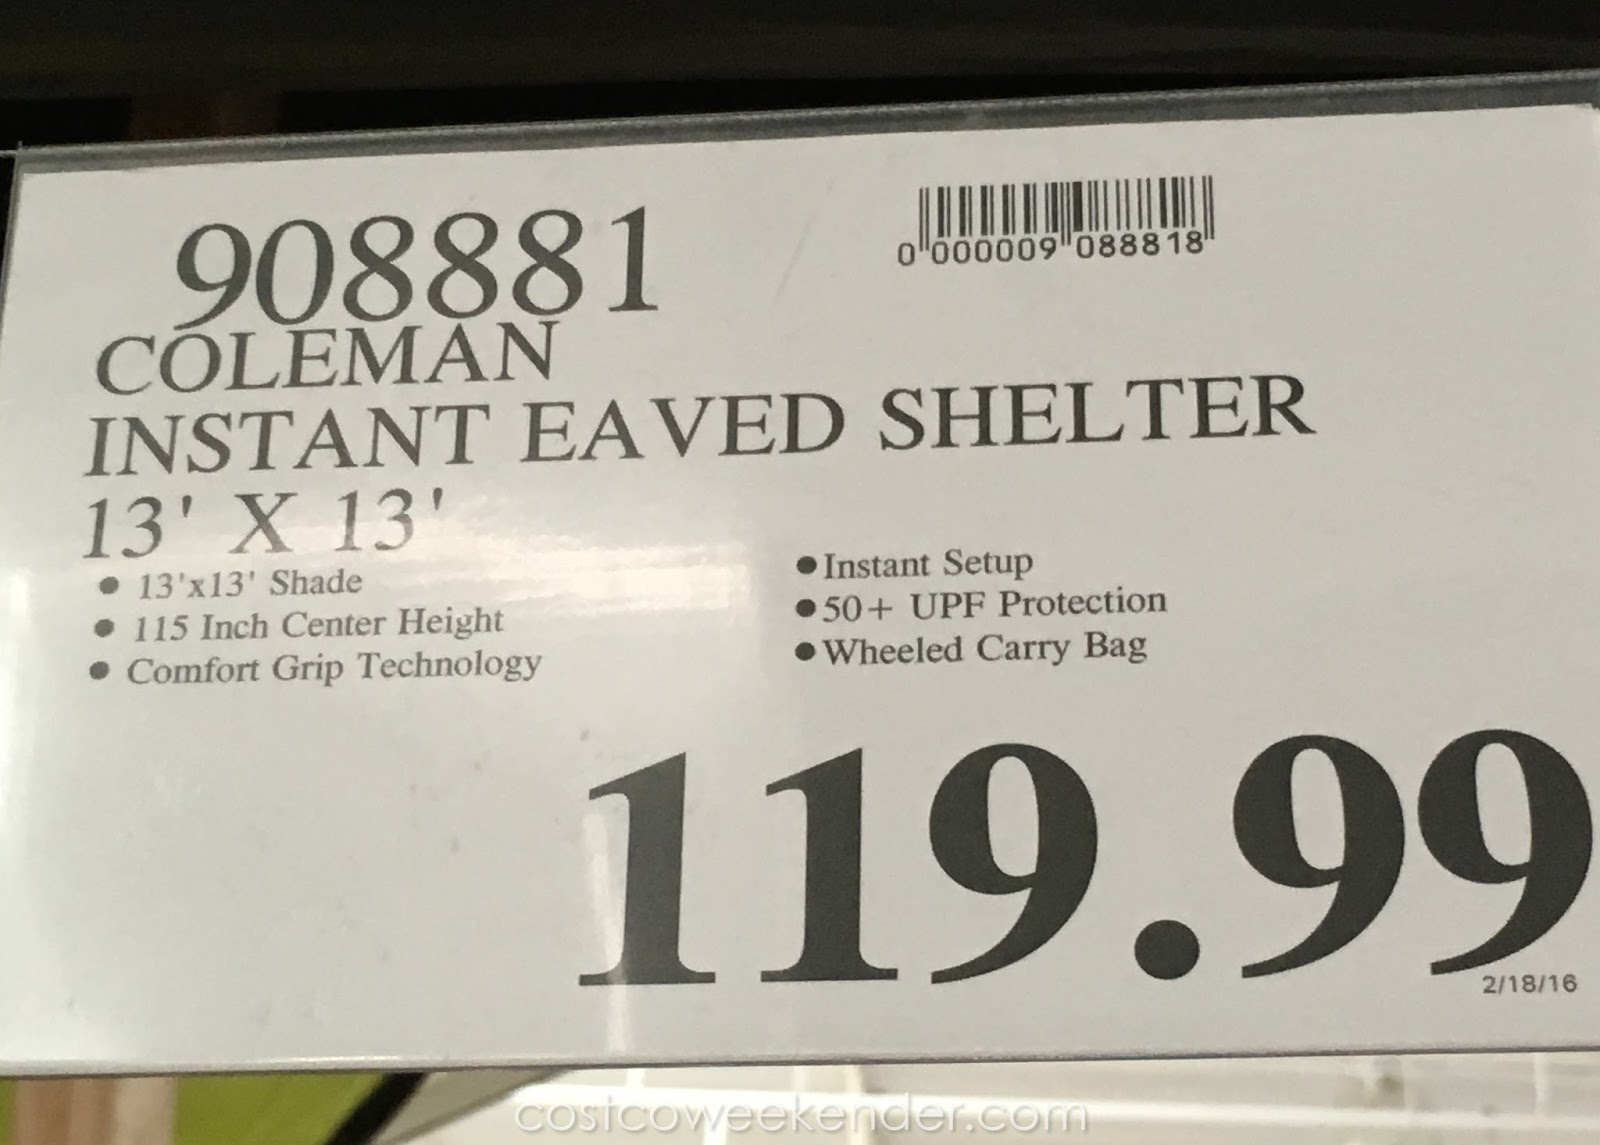 Deal for the Coleman Instant Eaved Shelter at Costco & Coleman Instant Eaved Shelter | Costco Weekender